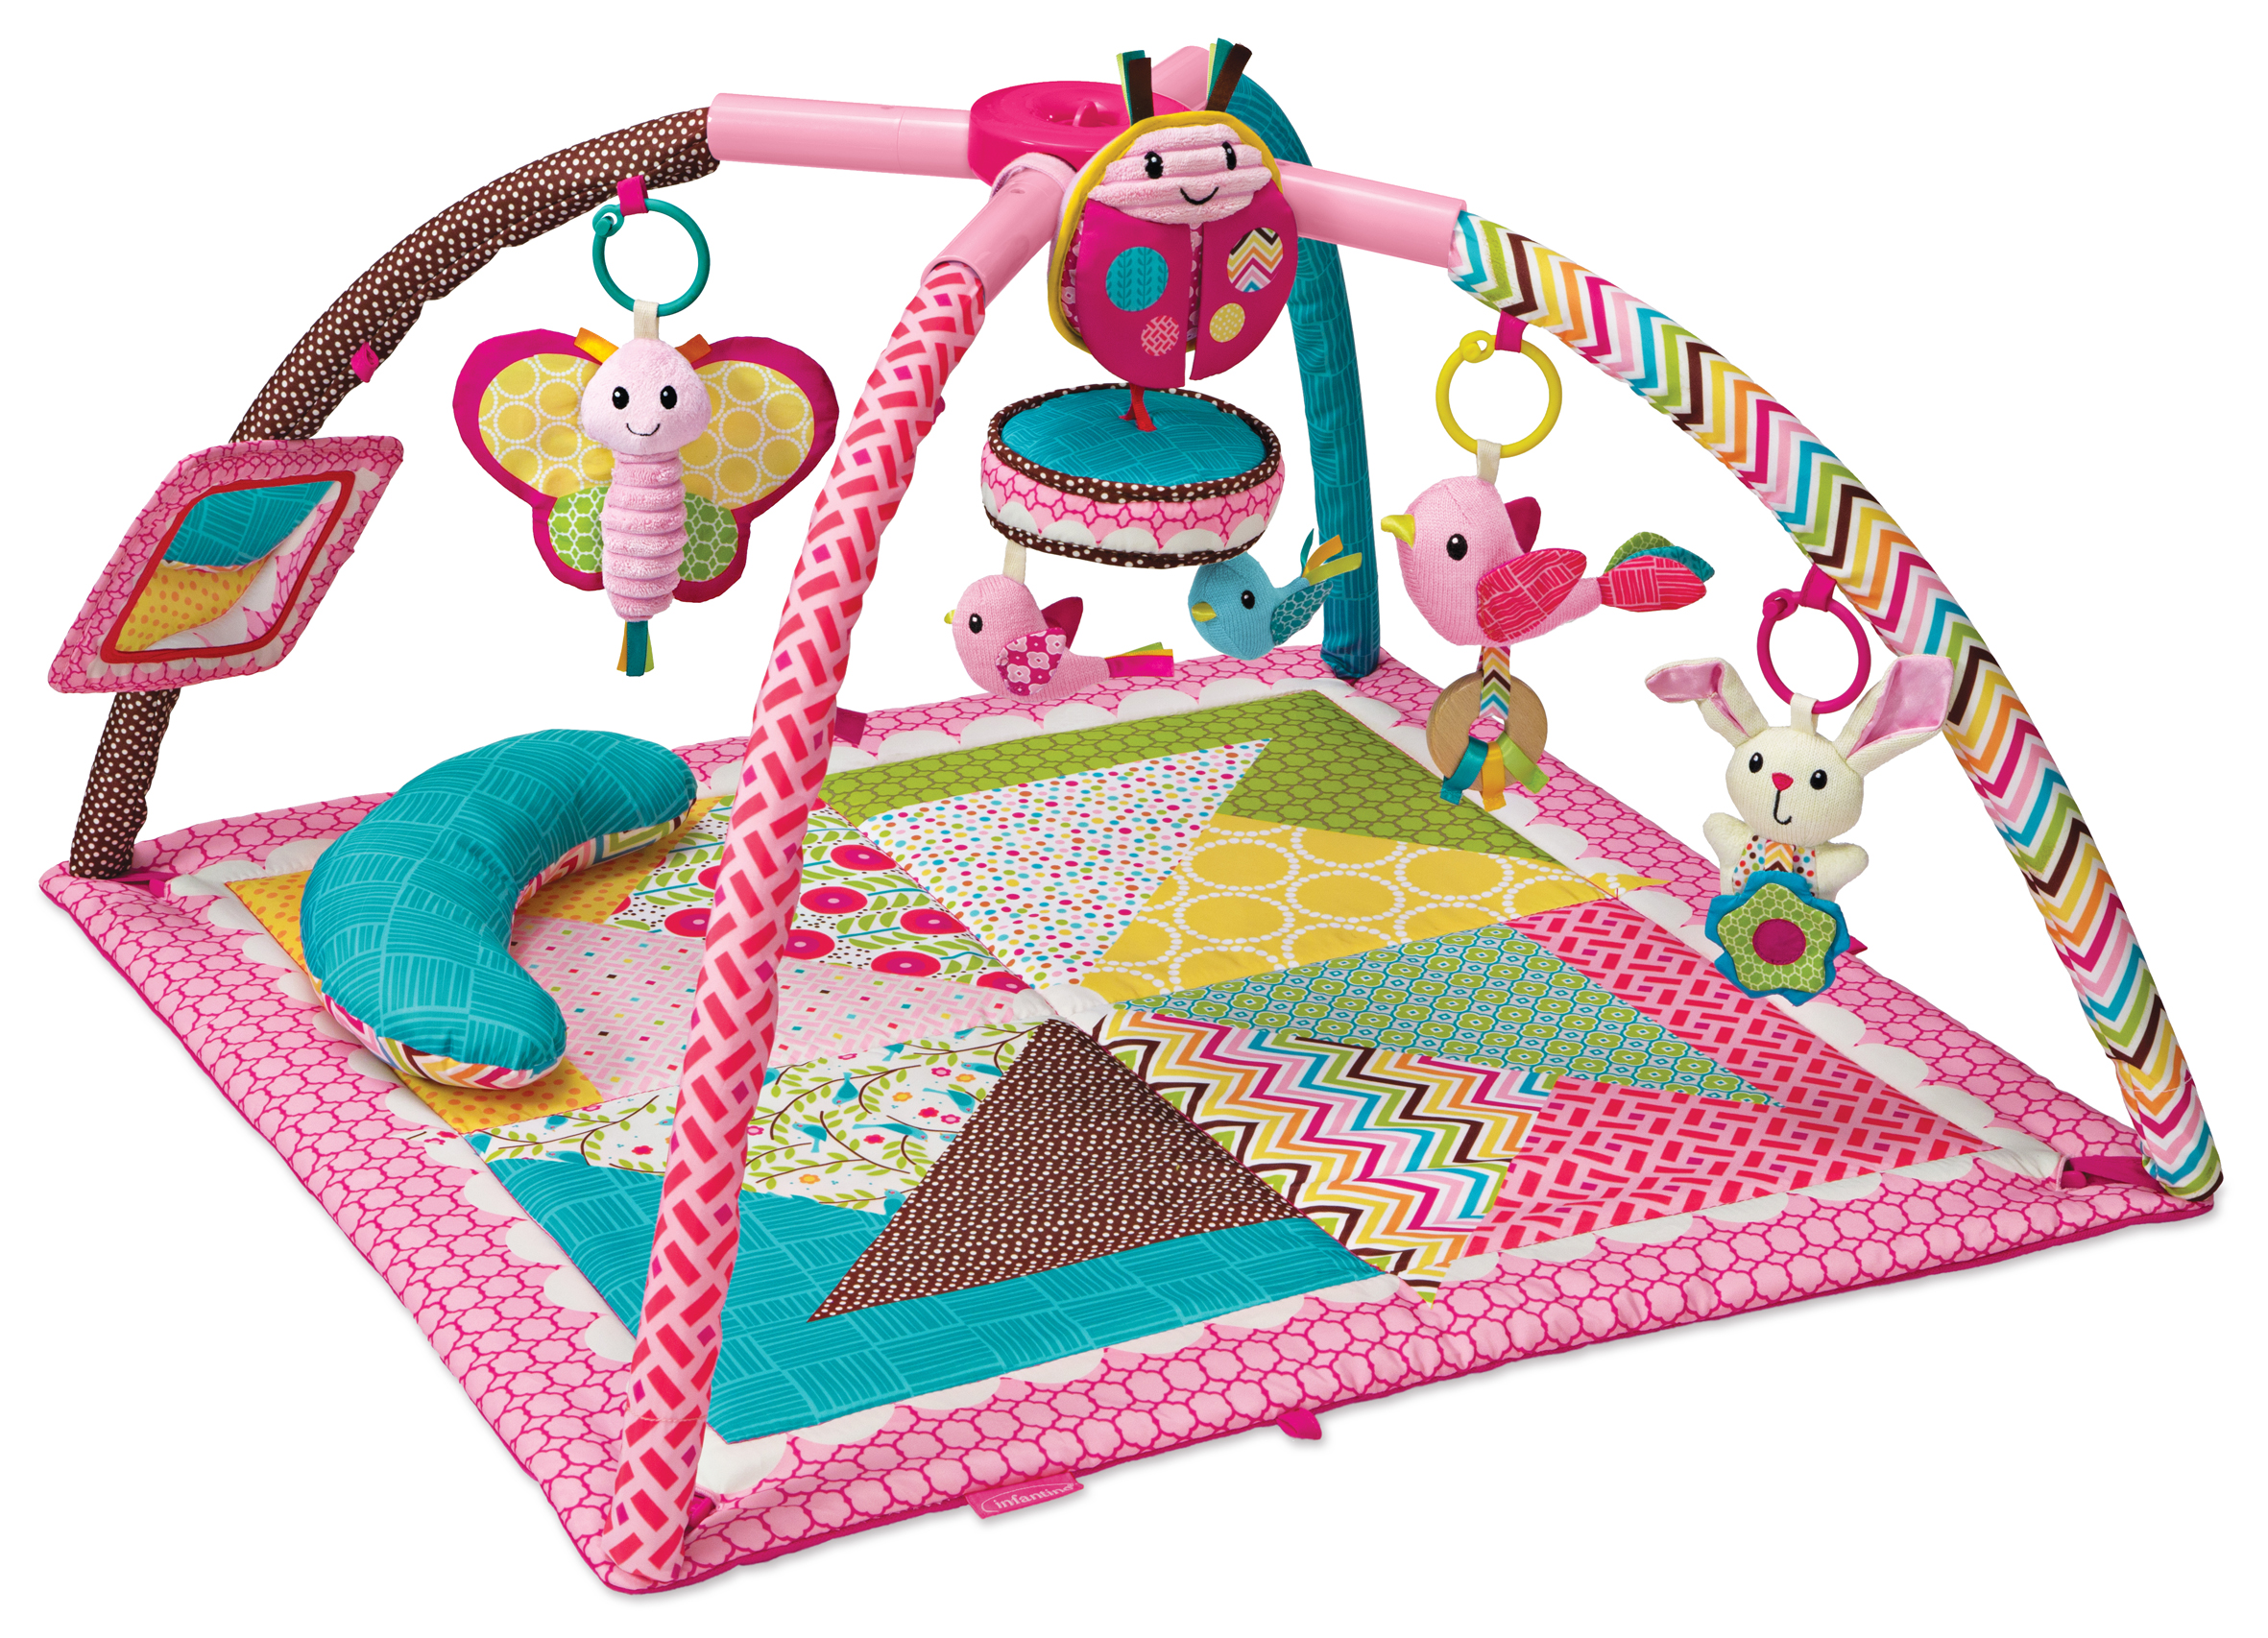 Infantino Twist and Fold Activity Gym Tummy Time Mat Baby Play Mat